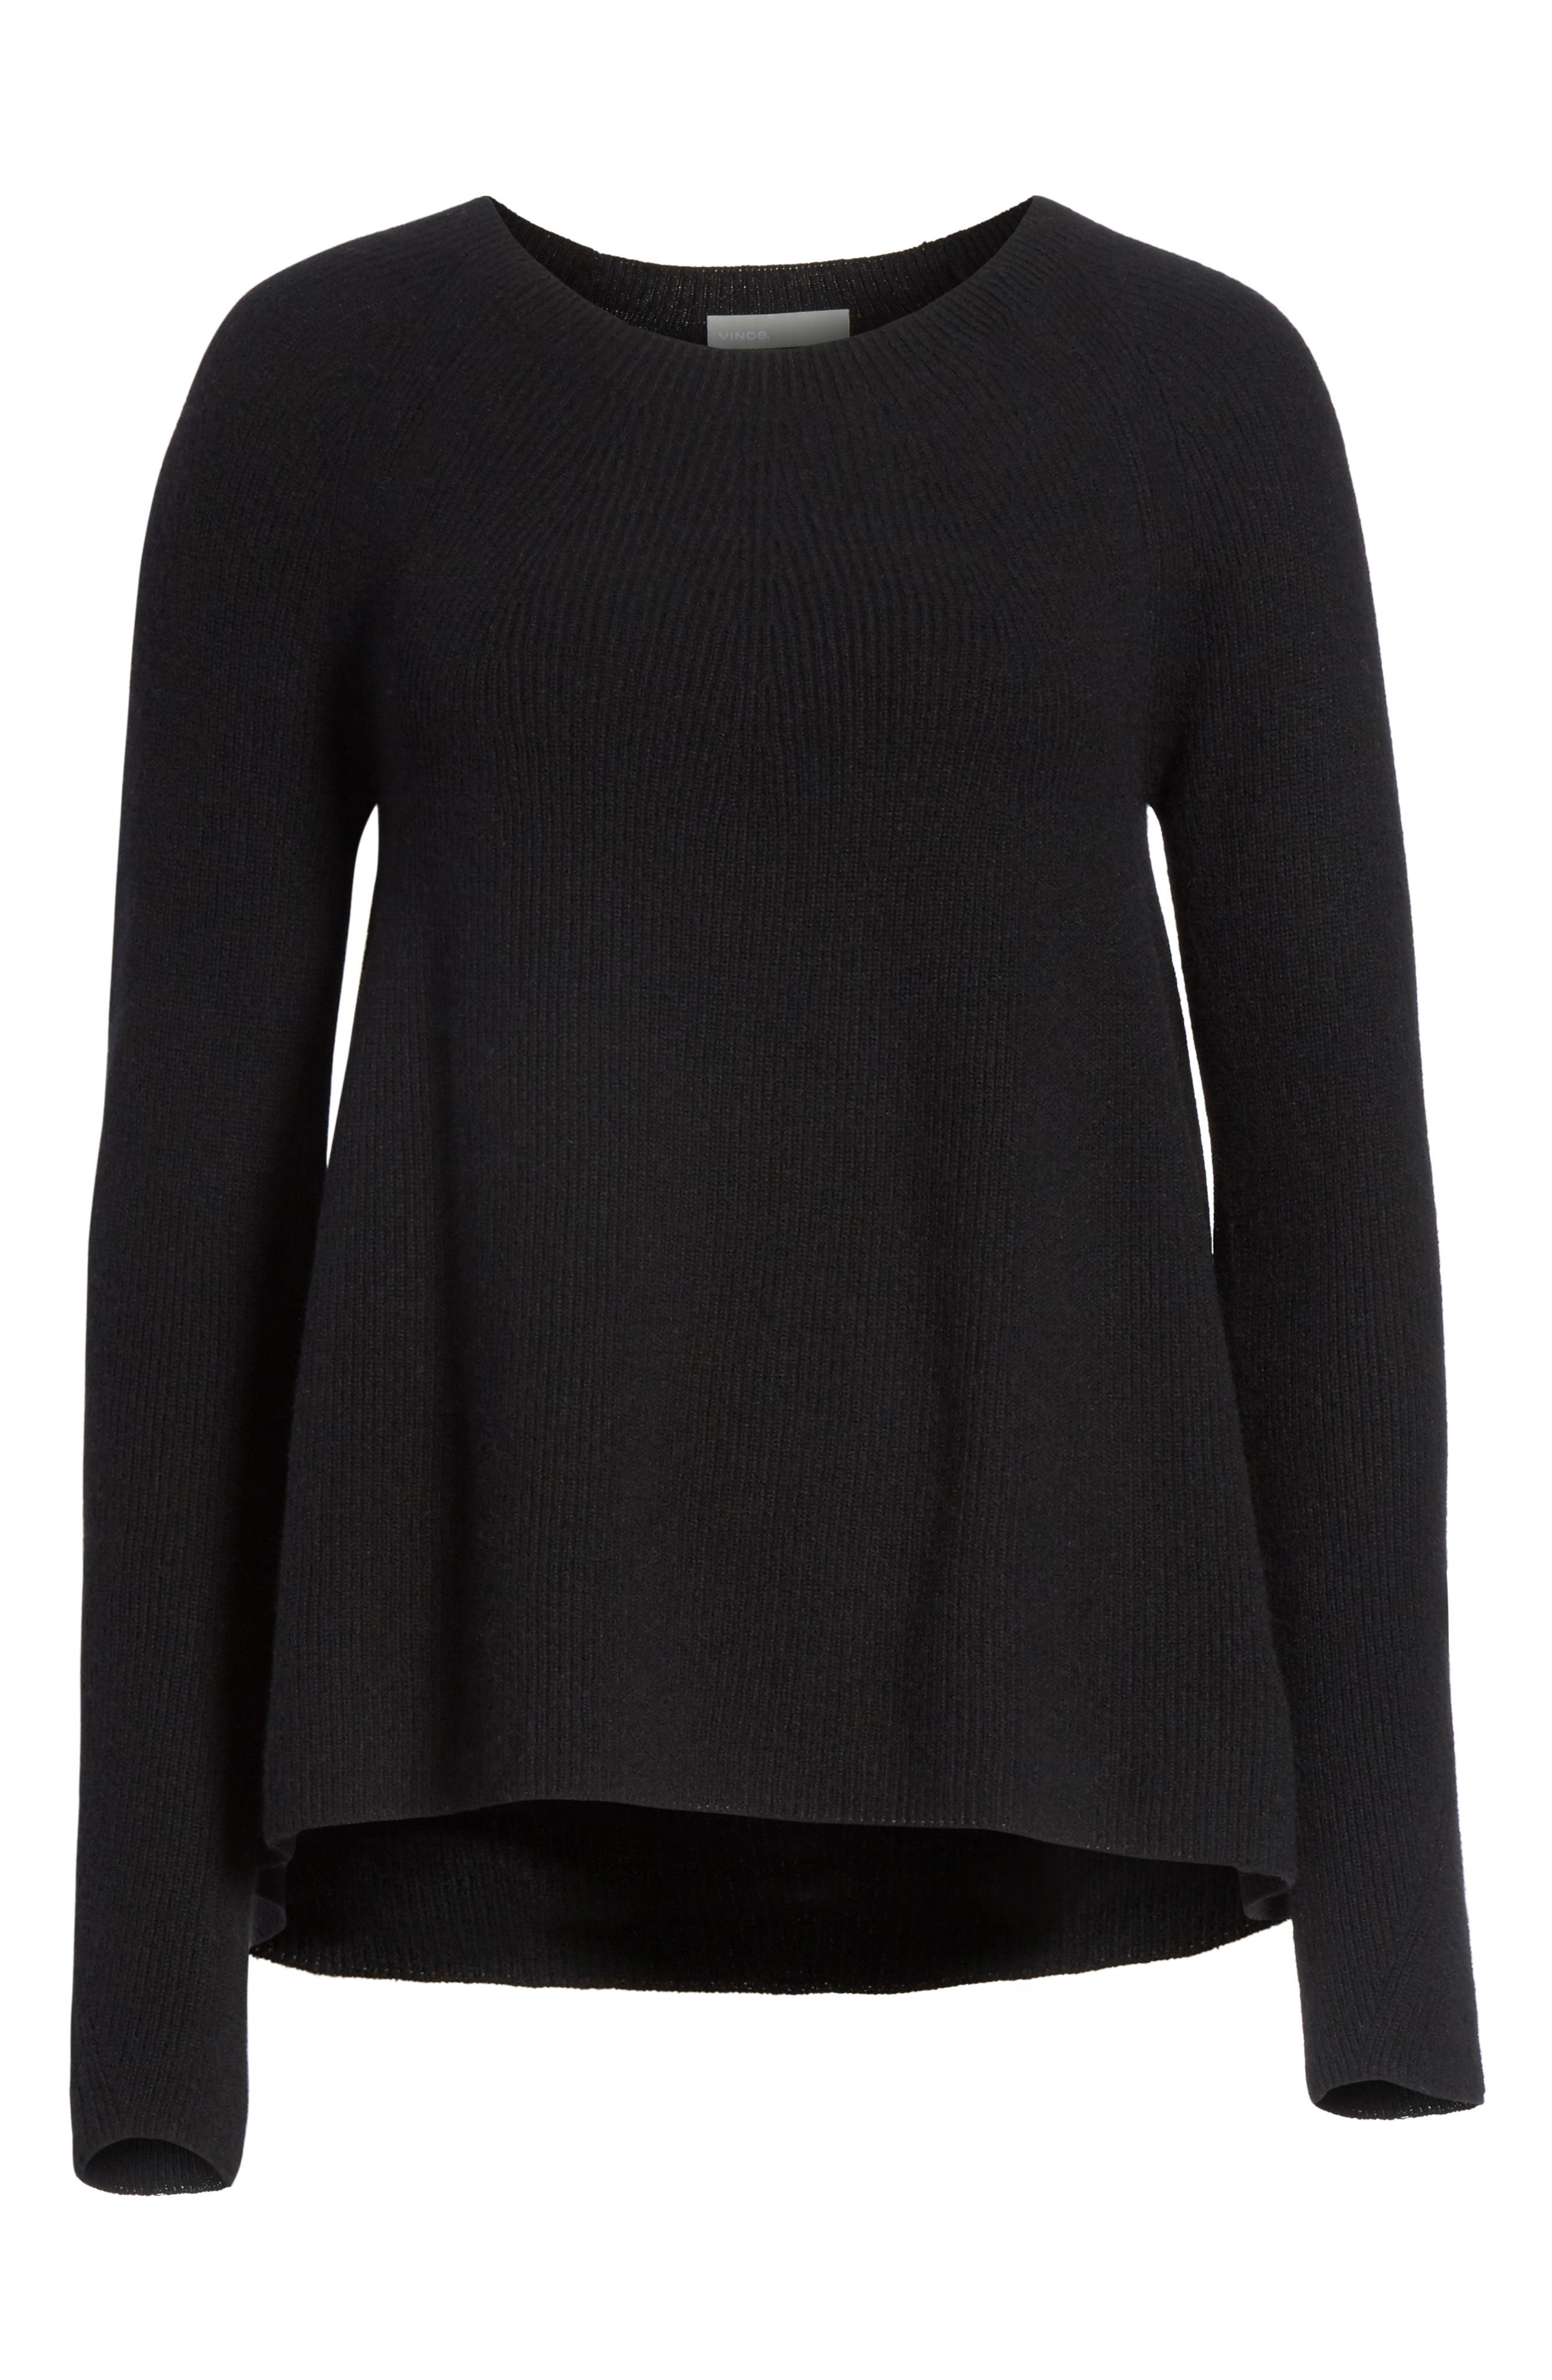 Ribbed Cashmere Sweater,                             Alternate thumbnail 6, color,                             Black